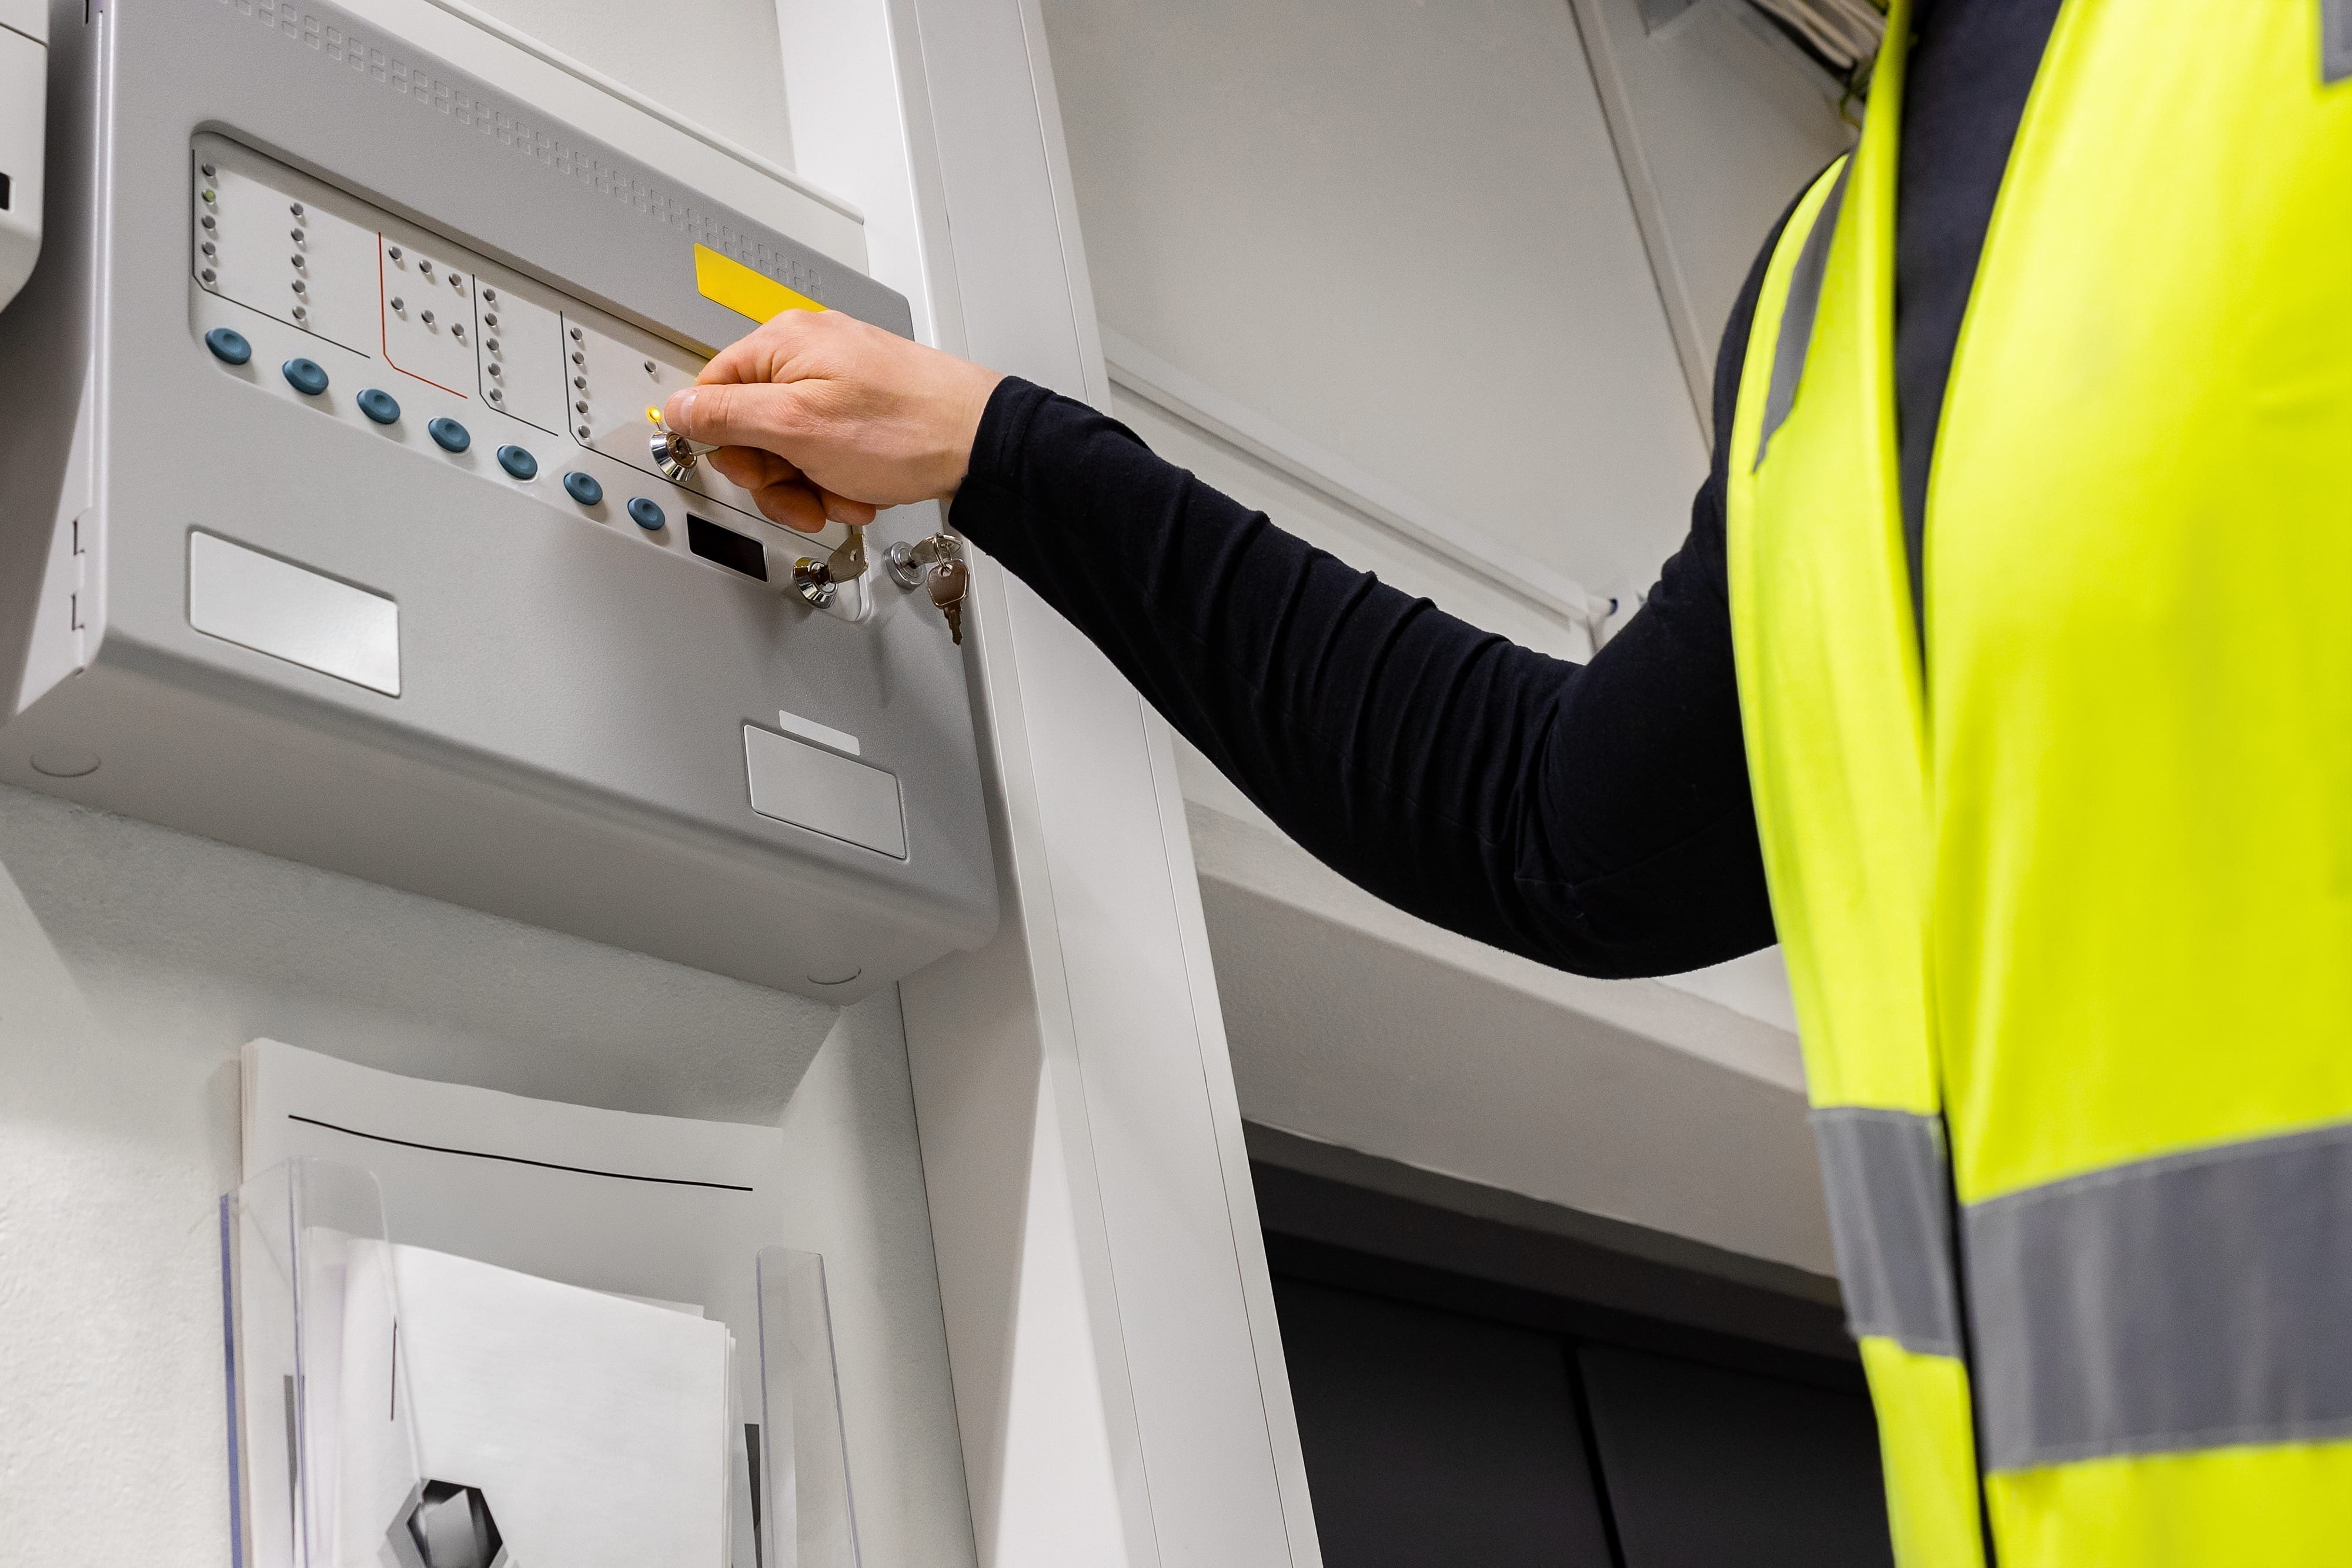 electrician opening fire panel in server room